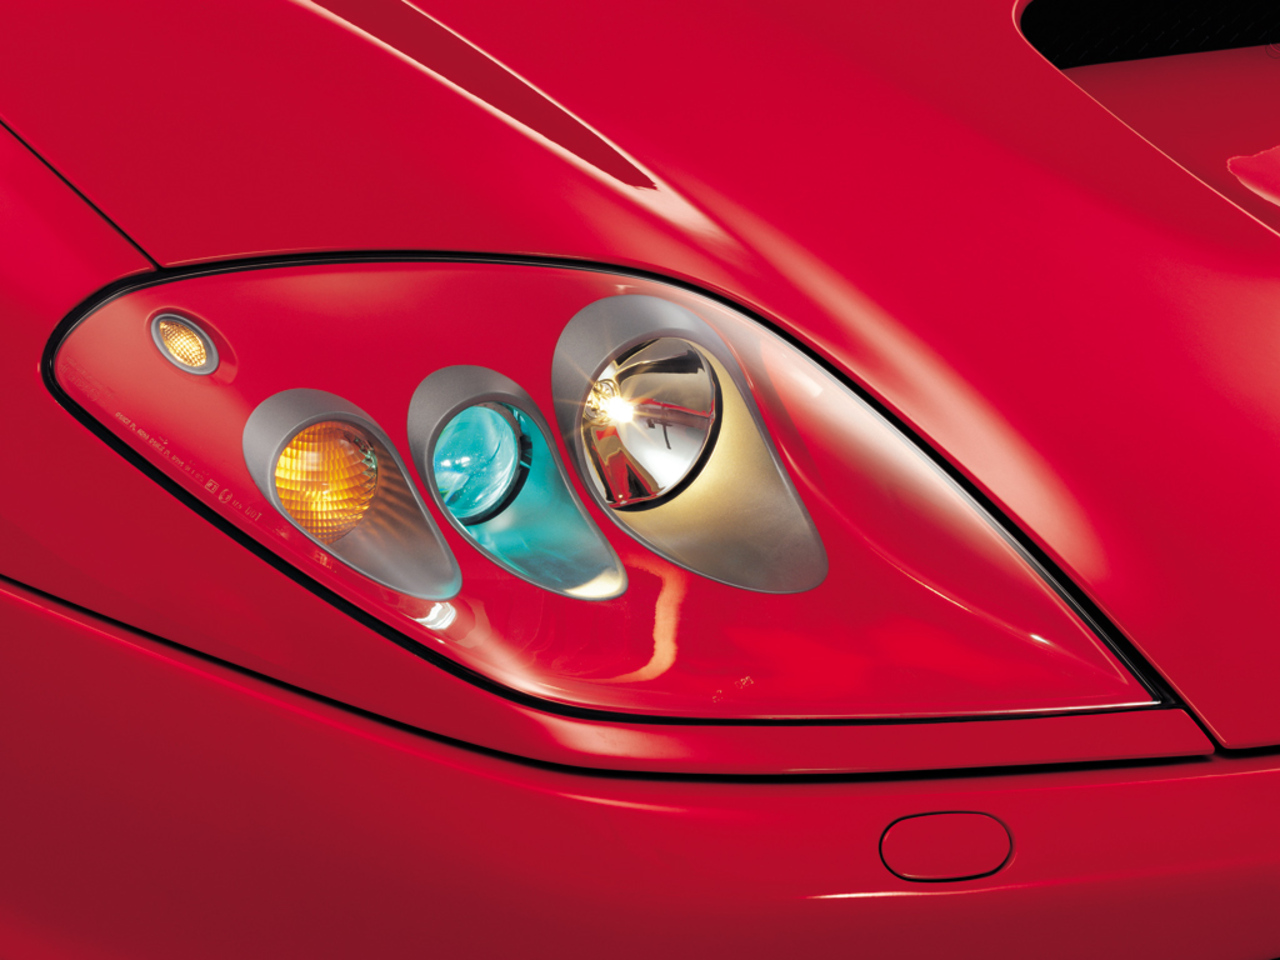 575M Maranello, front light